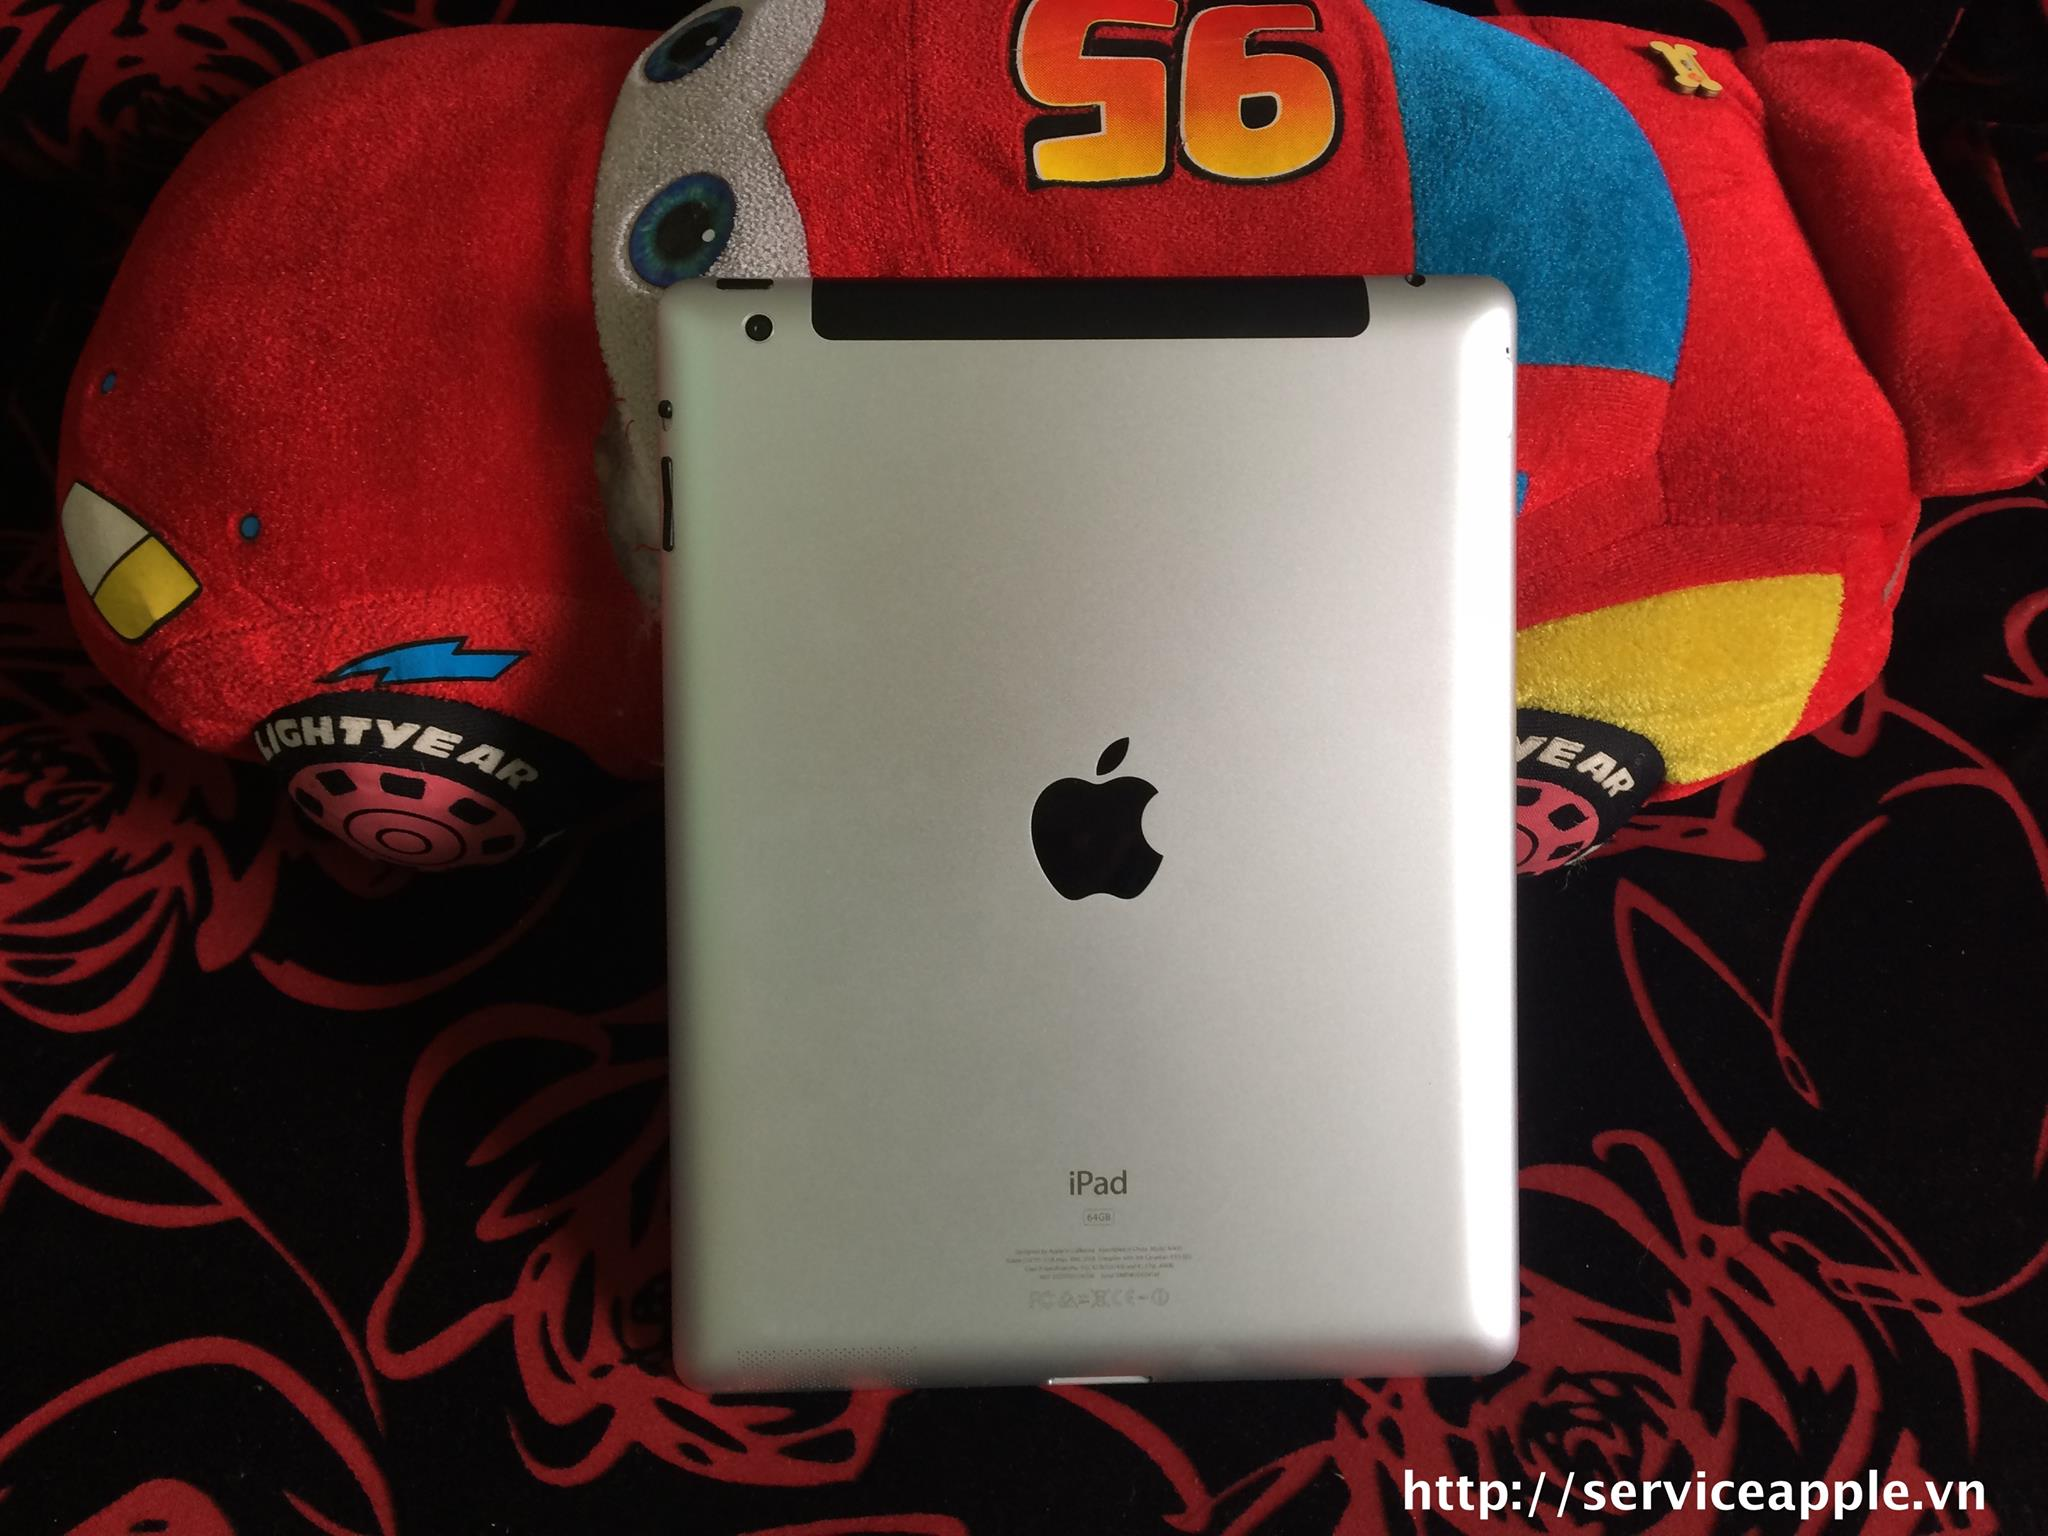 ipad 3 64gb wifi.jpg